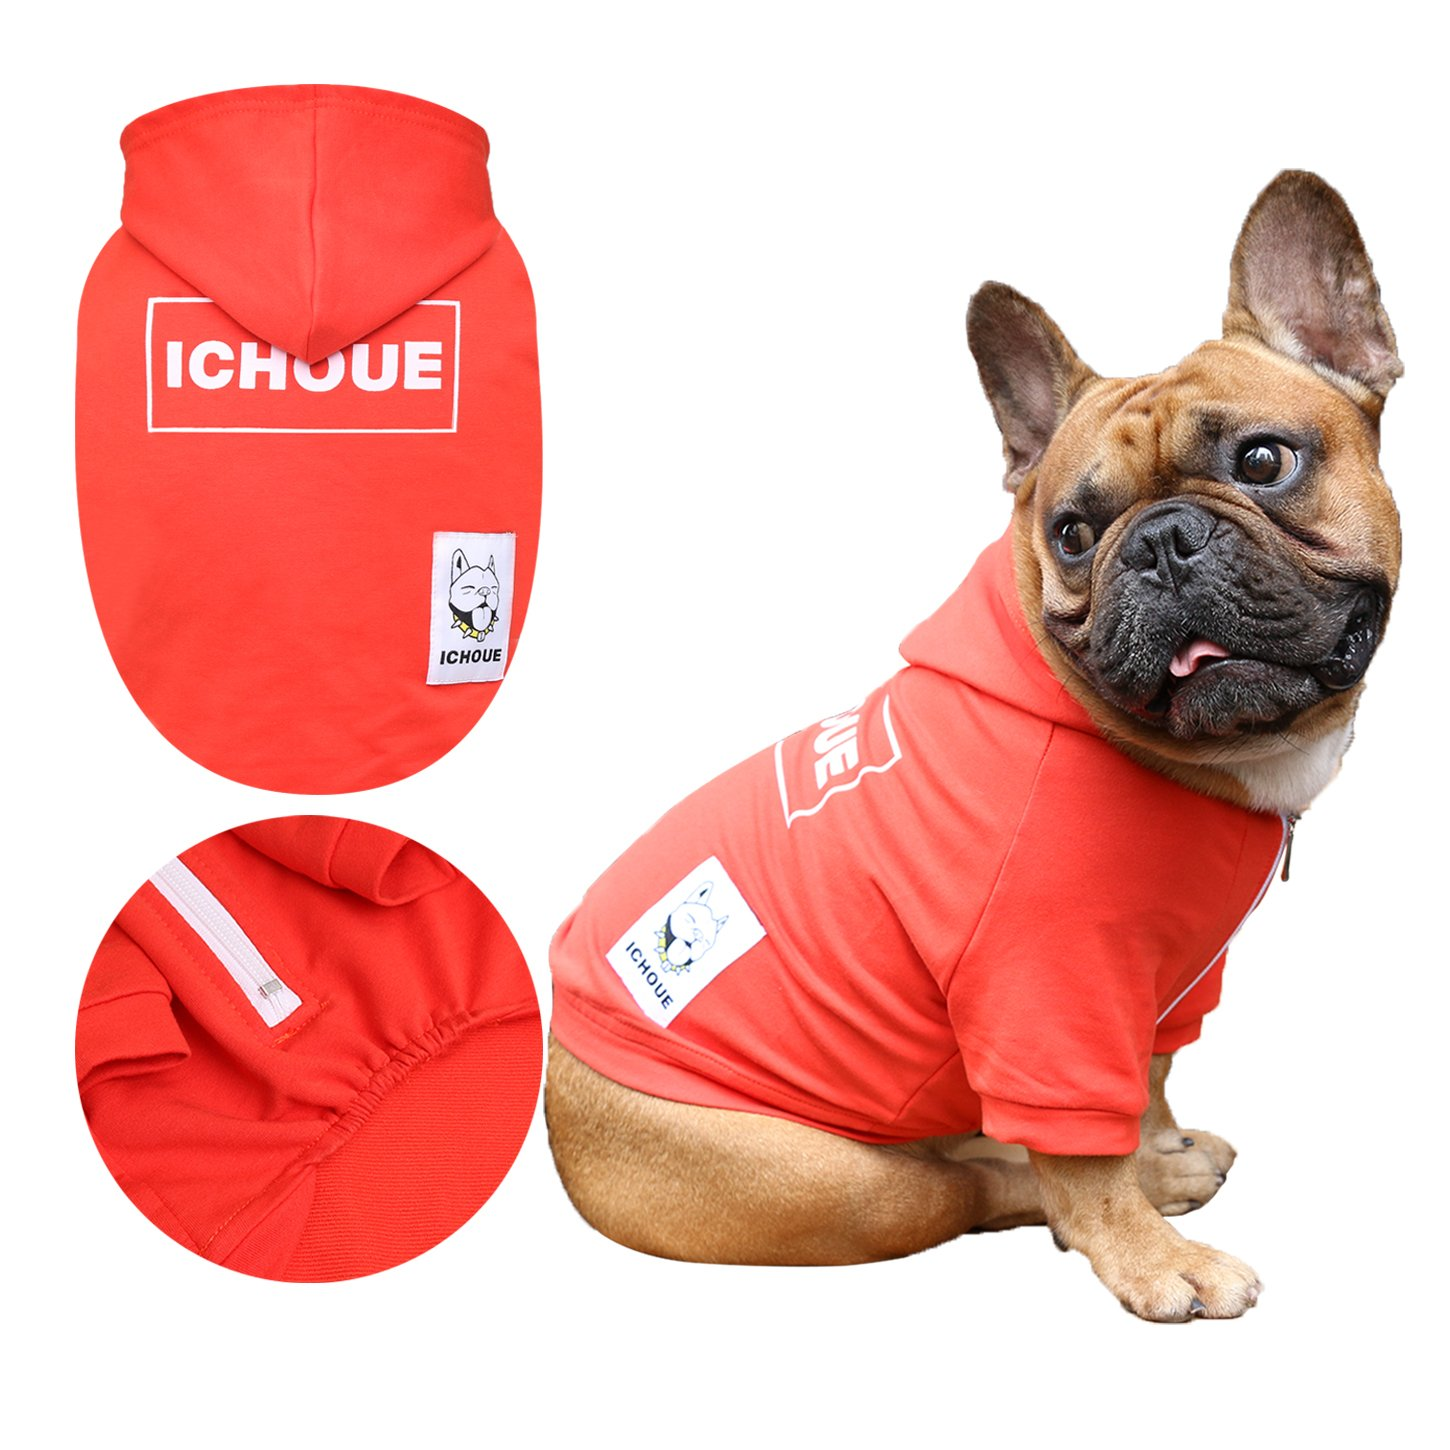 iChoue Dog Sweatshirt Hooded Half Zipper Clothing for French Bulldog Pug Shiba Inu Boston Terrier Box Logo Shirt - Red Size M